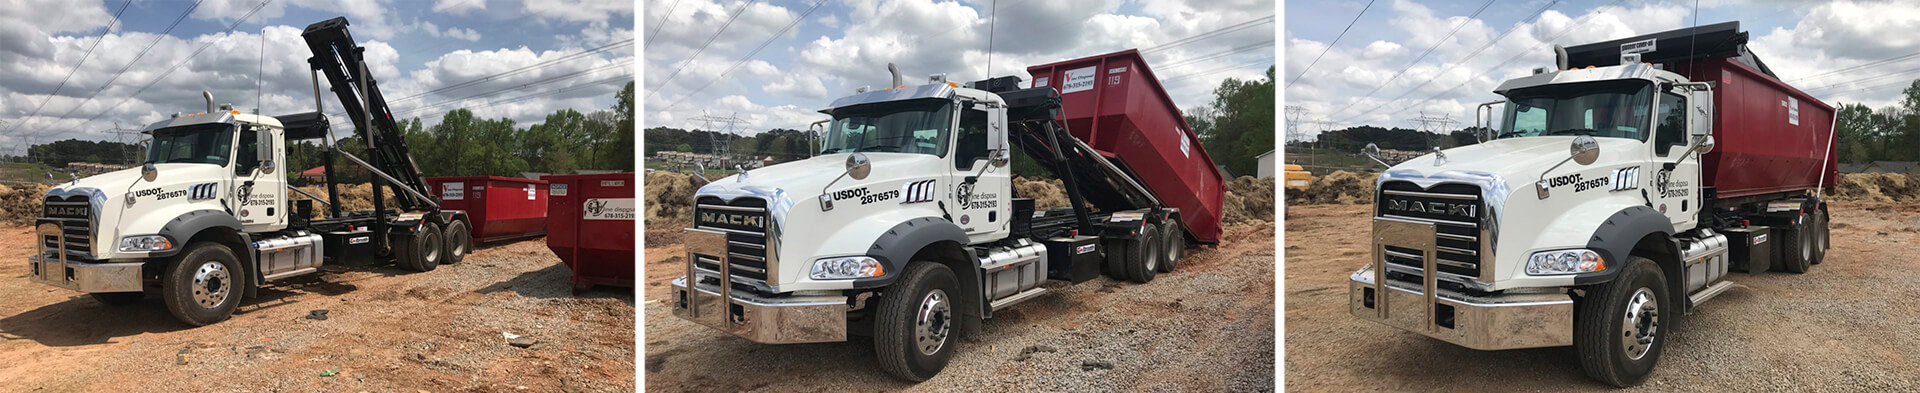 Dumpster rental in Milton